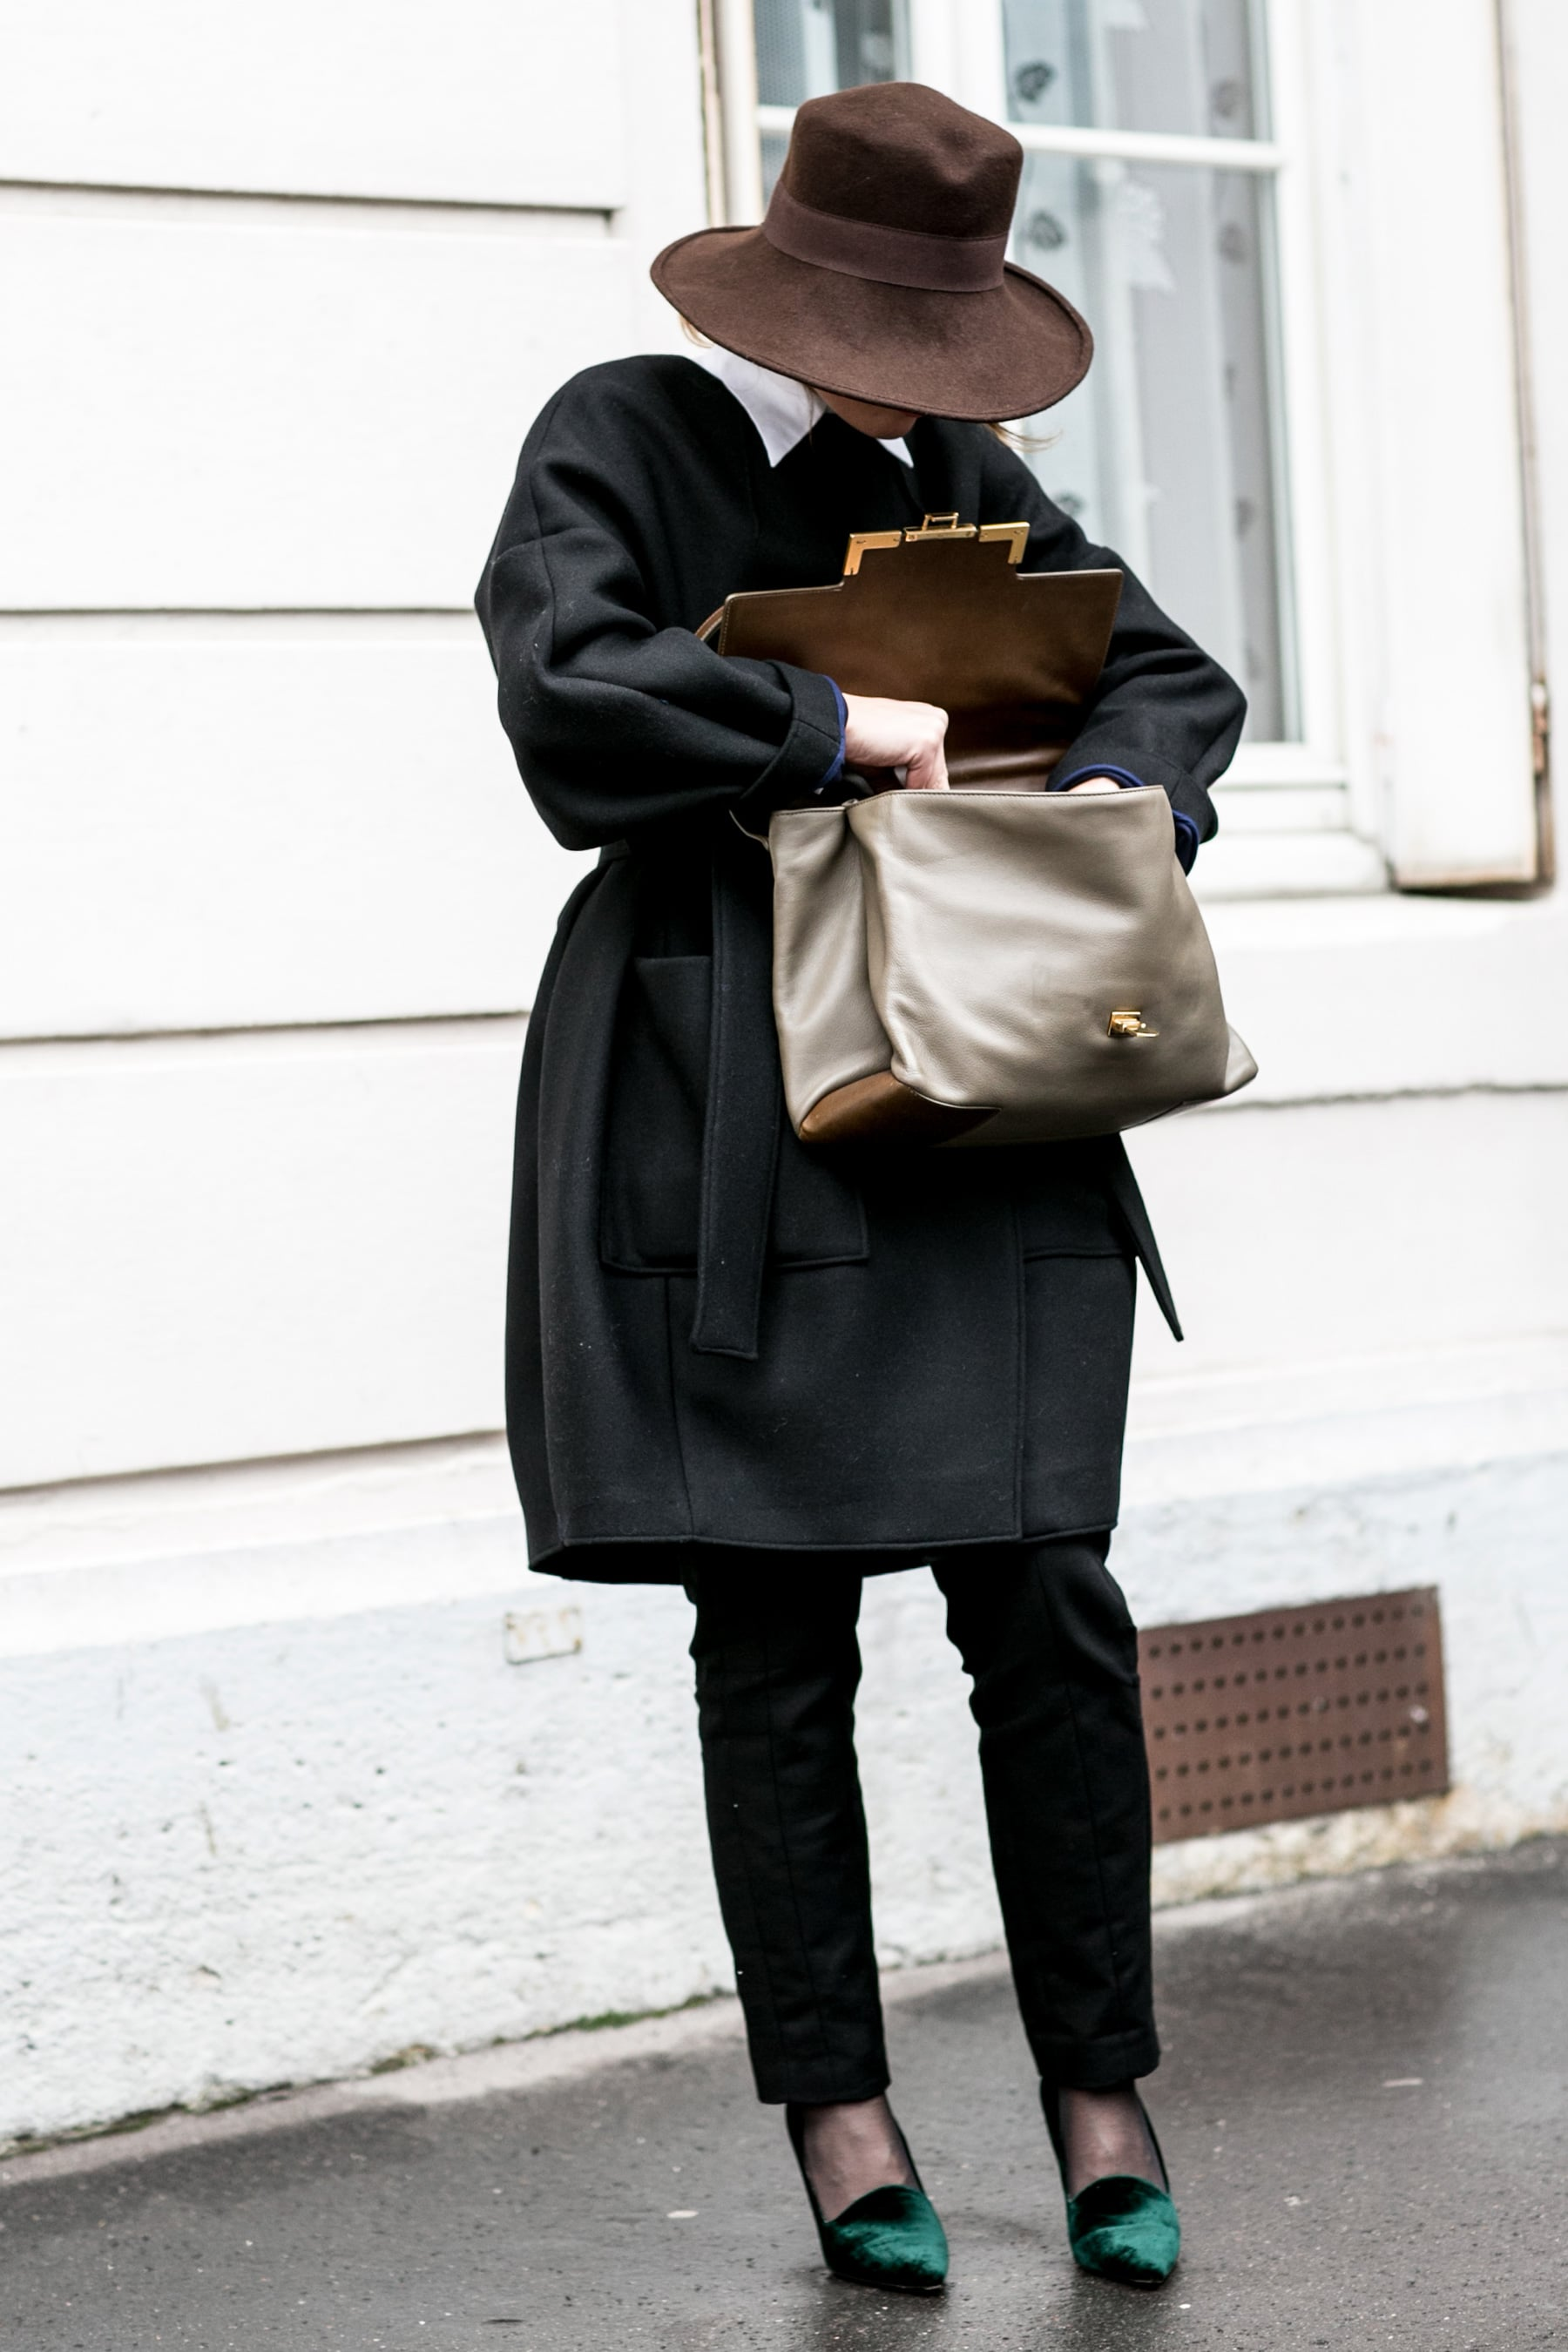 Even without seeing her face, this woman's captivated us with one of the chicest ensembles.